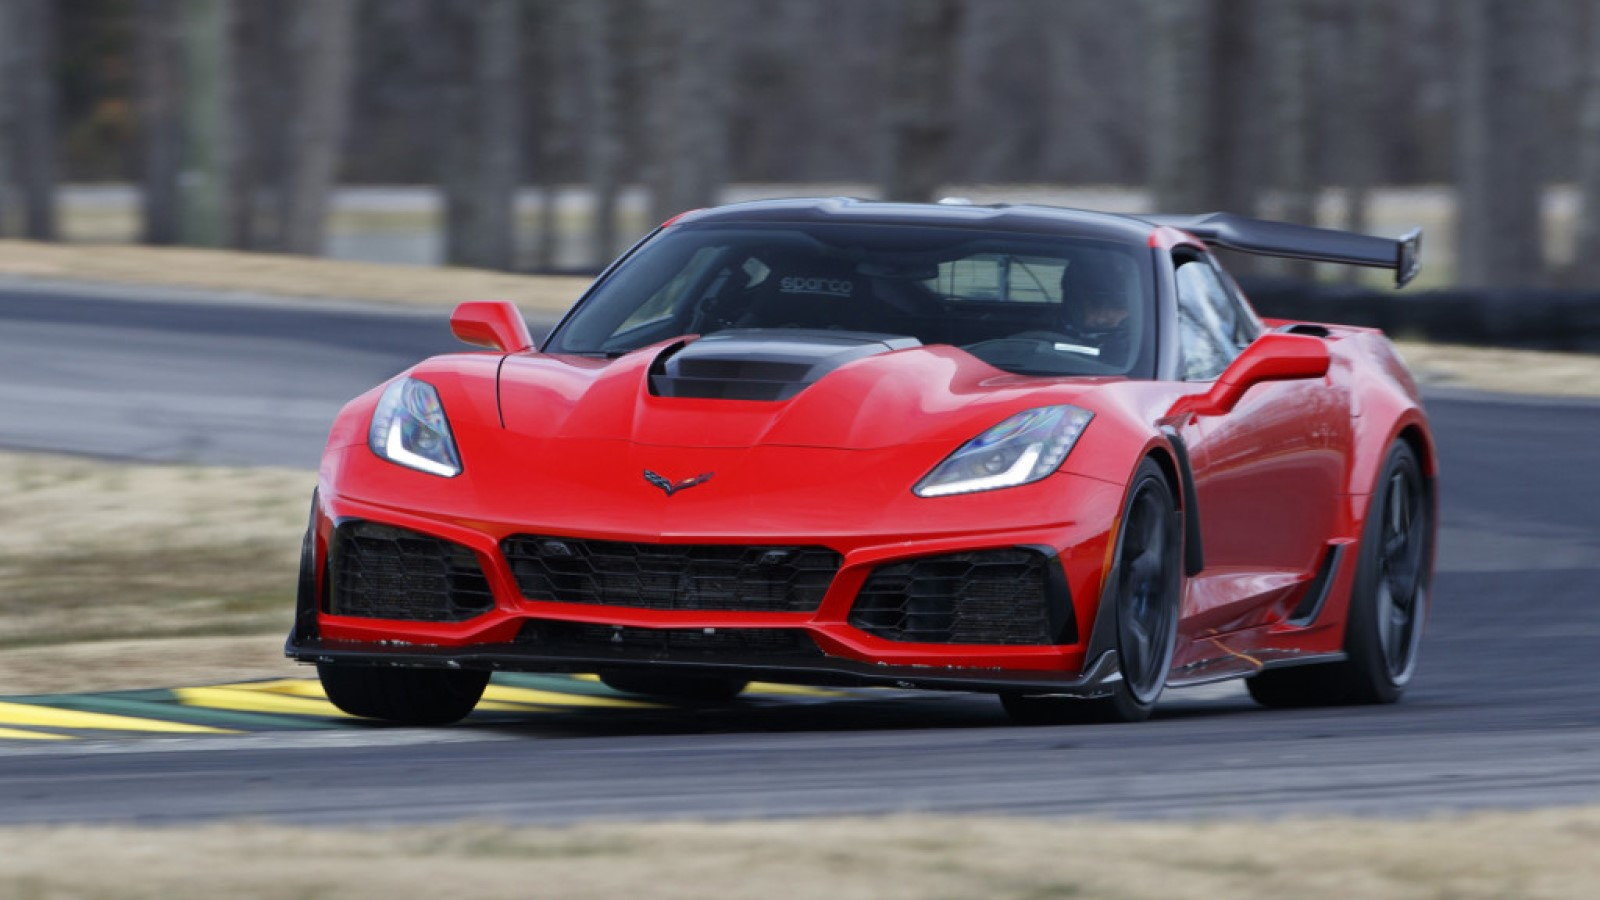 C7 ZR1 is Crowned Motor Authority's Best Car to Buy in 2019